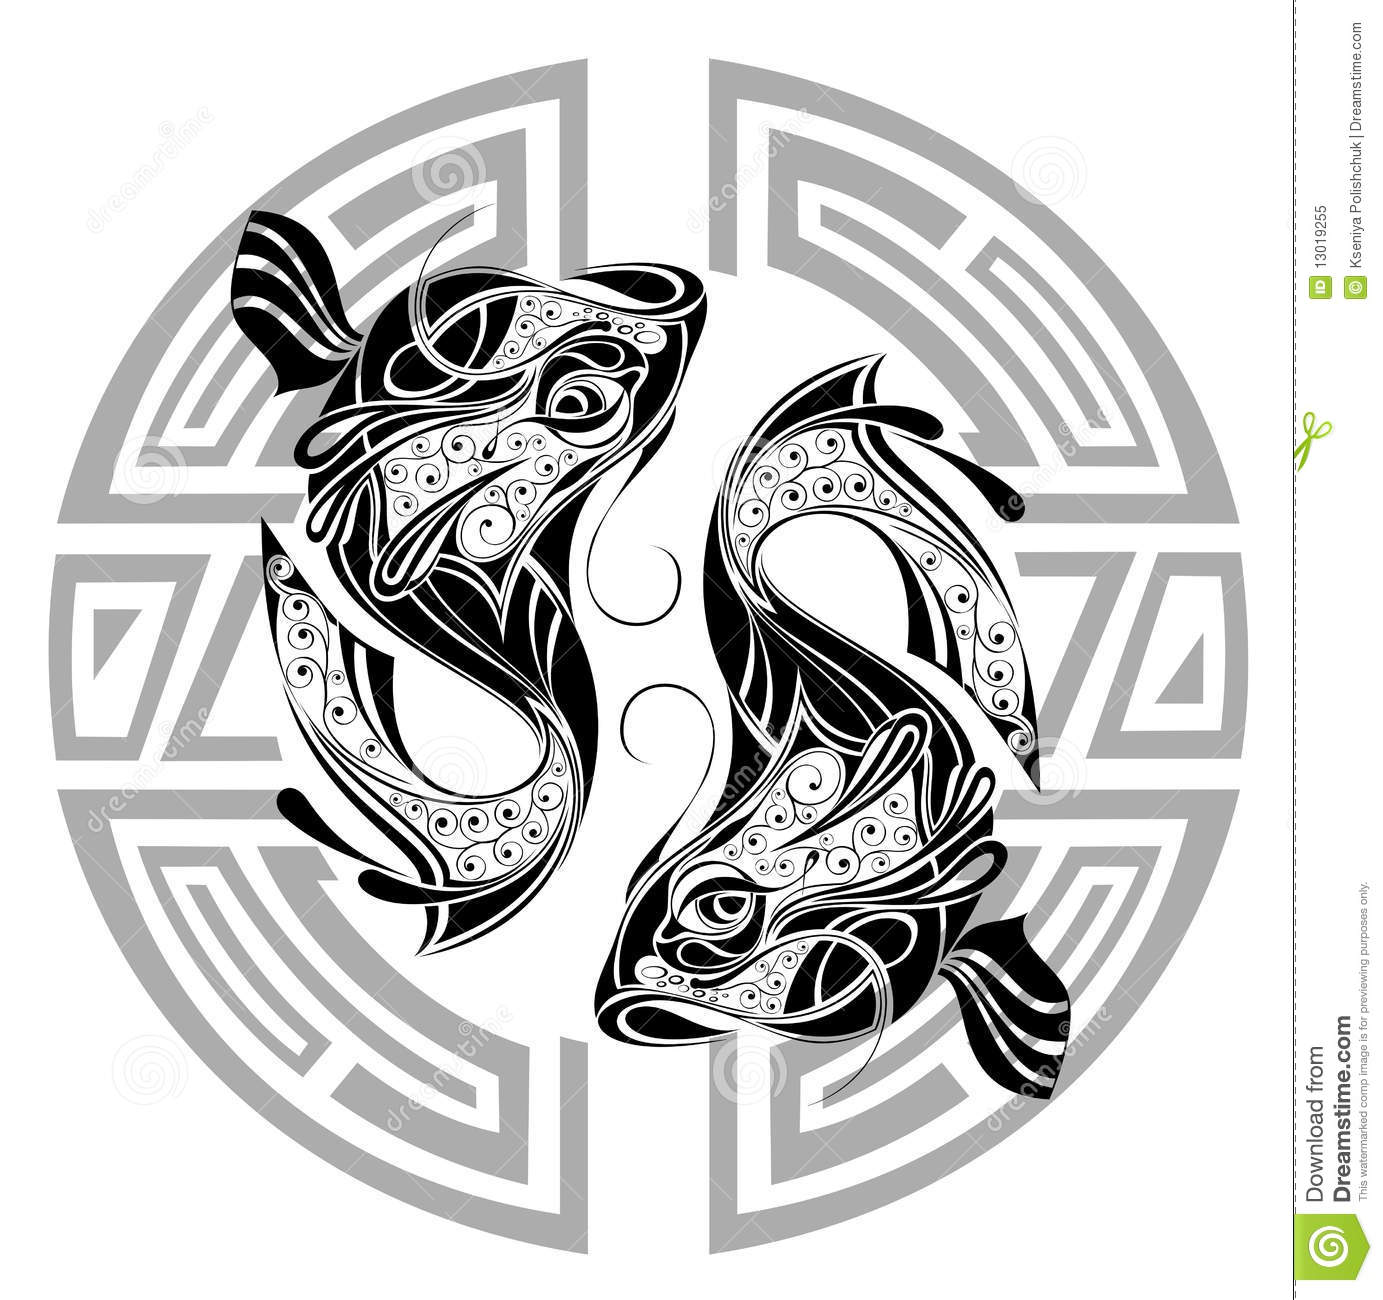 Zodiac Wheel With Sign Of Pisces Tattoo Design Stock Vector Illustration Of Medallion Symbol 13019255